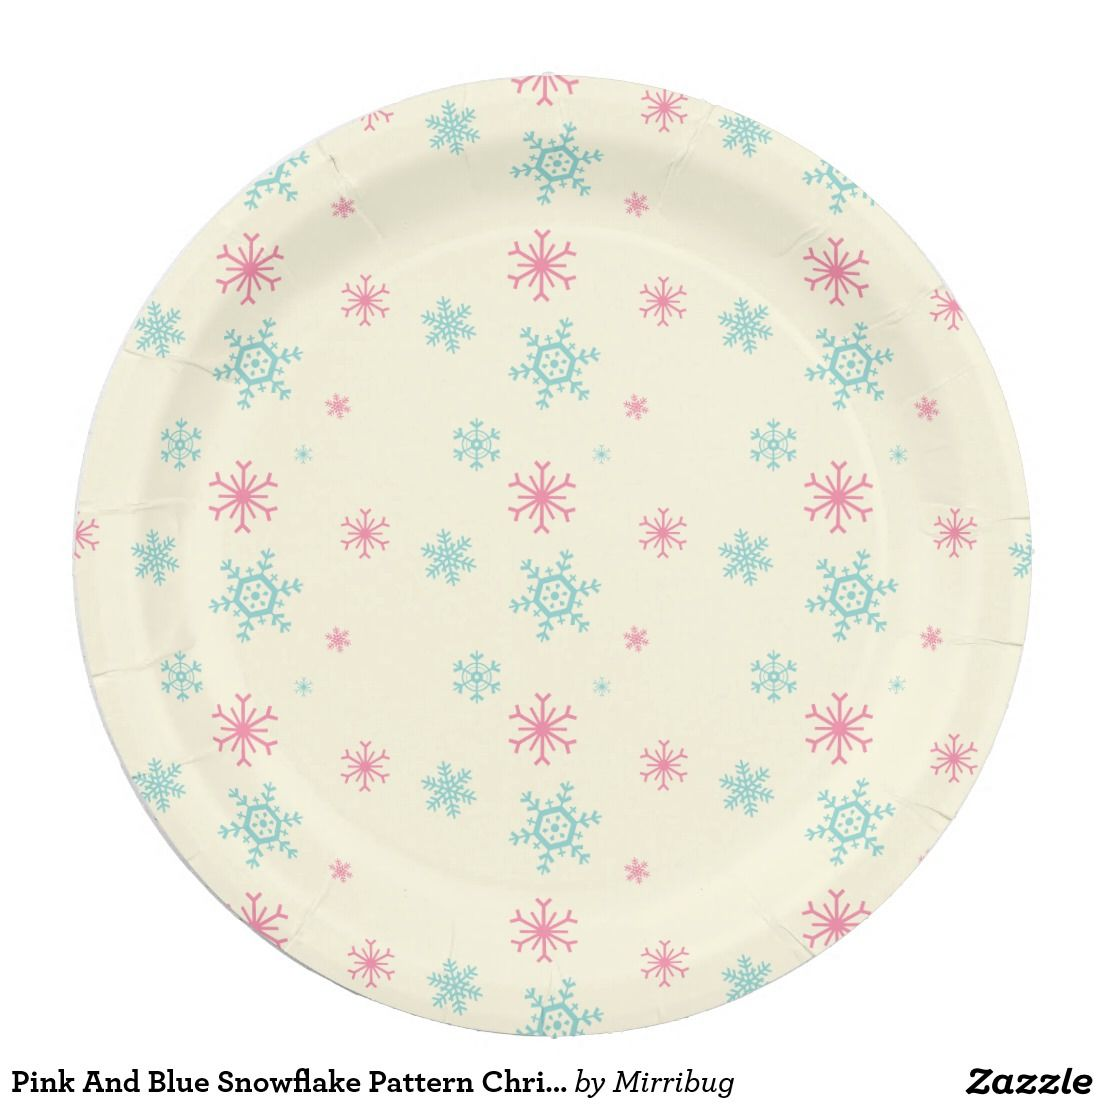 Pink And Blue Snowflake Pattern Christmas Wintery Paper Plate  sc 1 st  Pinterest & Pink And Blue Snowflake Pattern Christmas Wintery Paper Plate ...